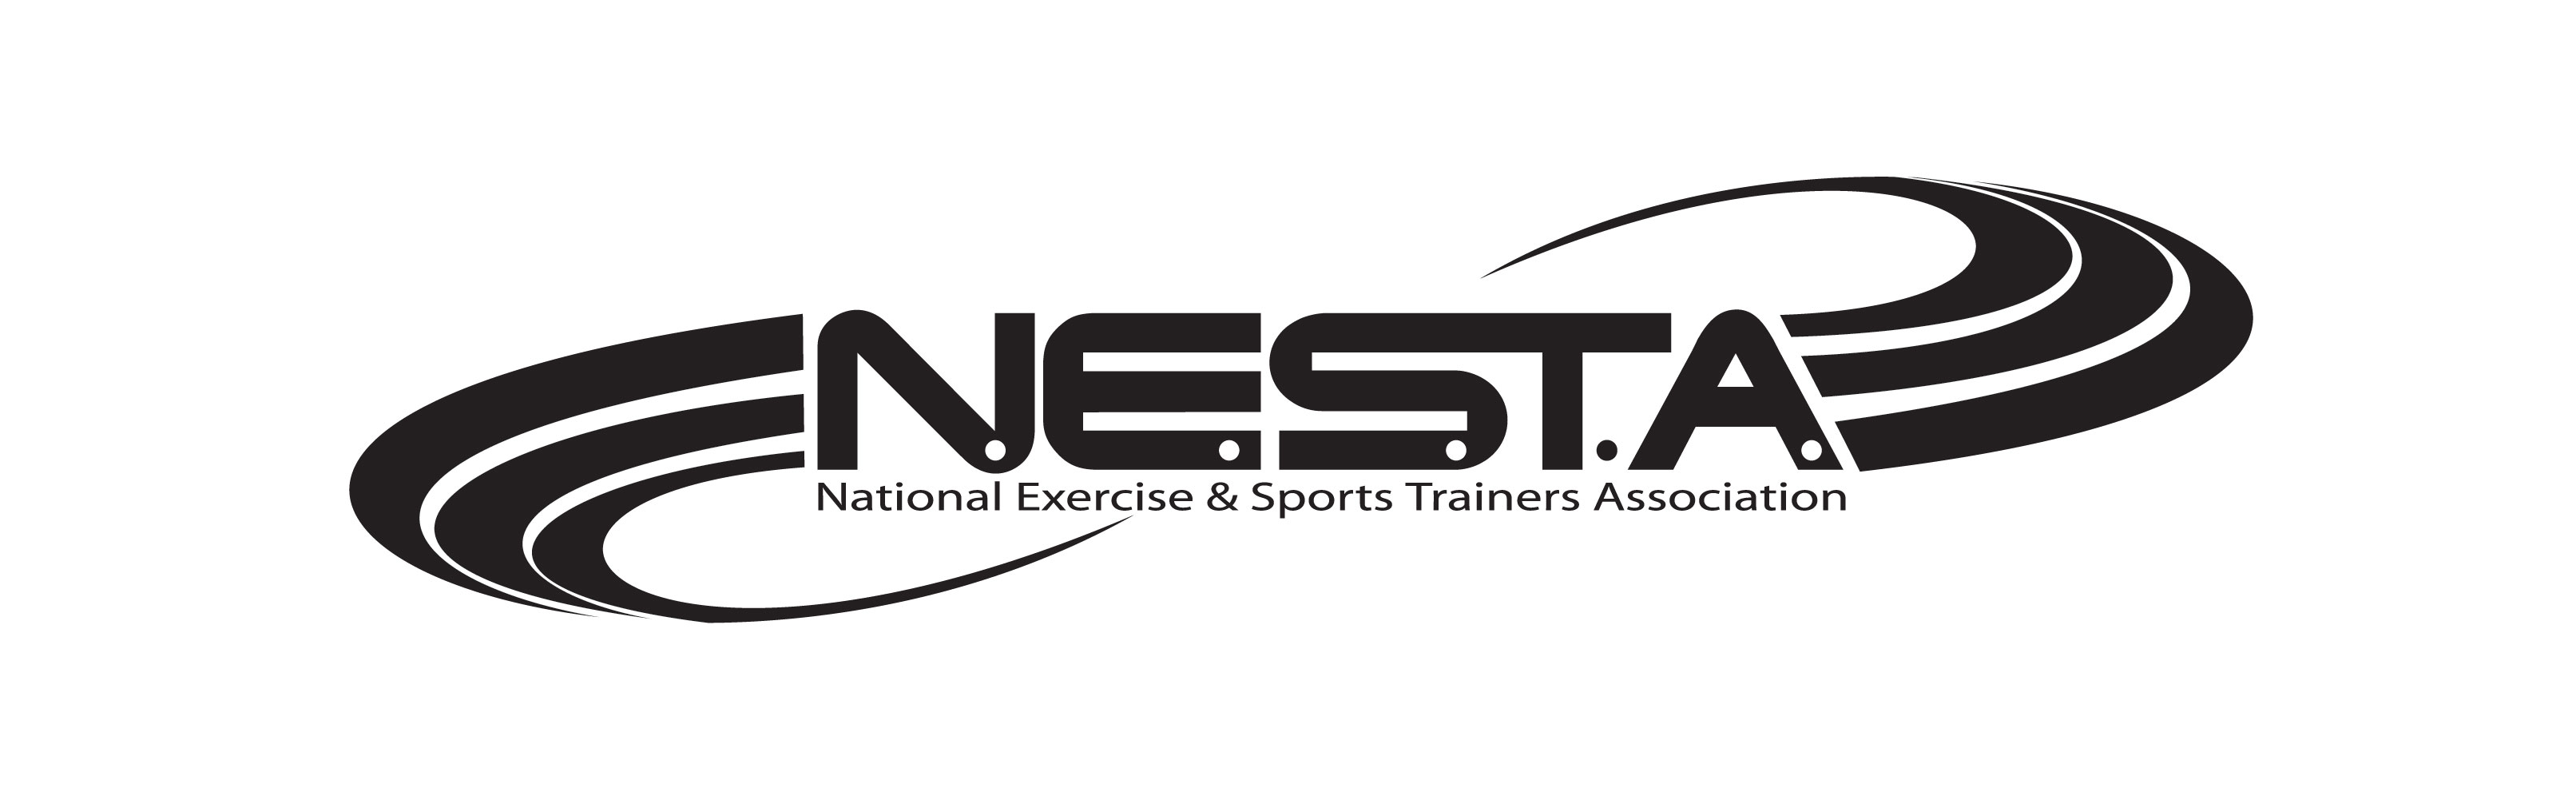 Sports And Education Come Together With National Exercise Sports